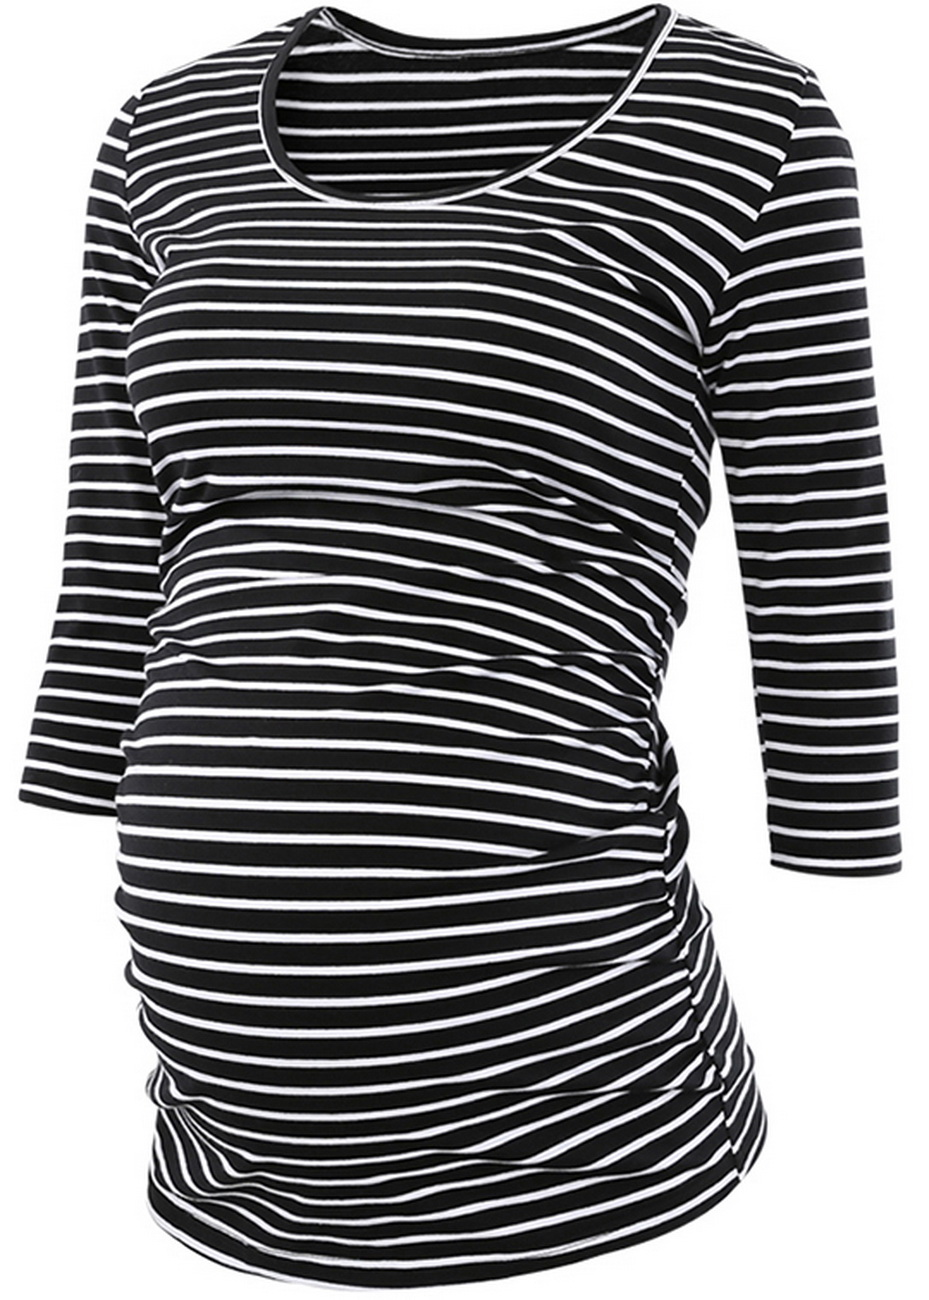 Maternity Clothes Stripes Pregnant Tunic Tops Flattering Side Ruching Pregnancy 3/4 Sleeve Scoop Neck Jersey Top T-Shirt